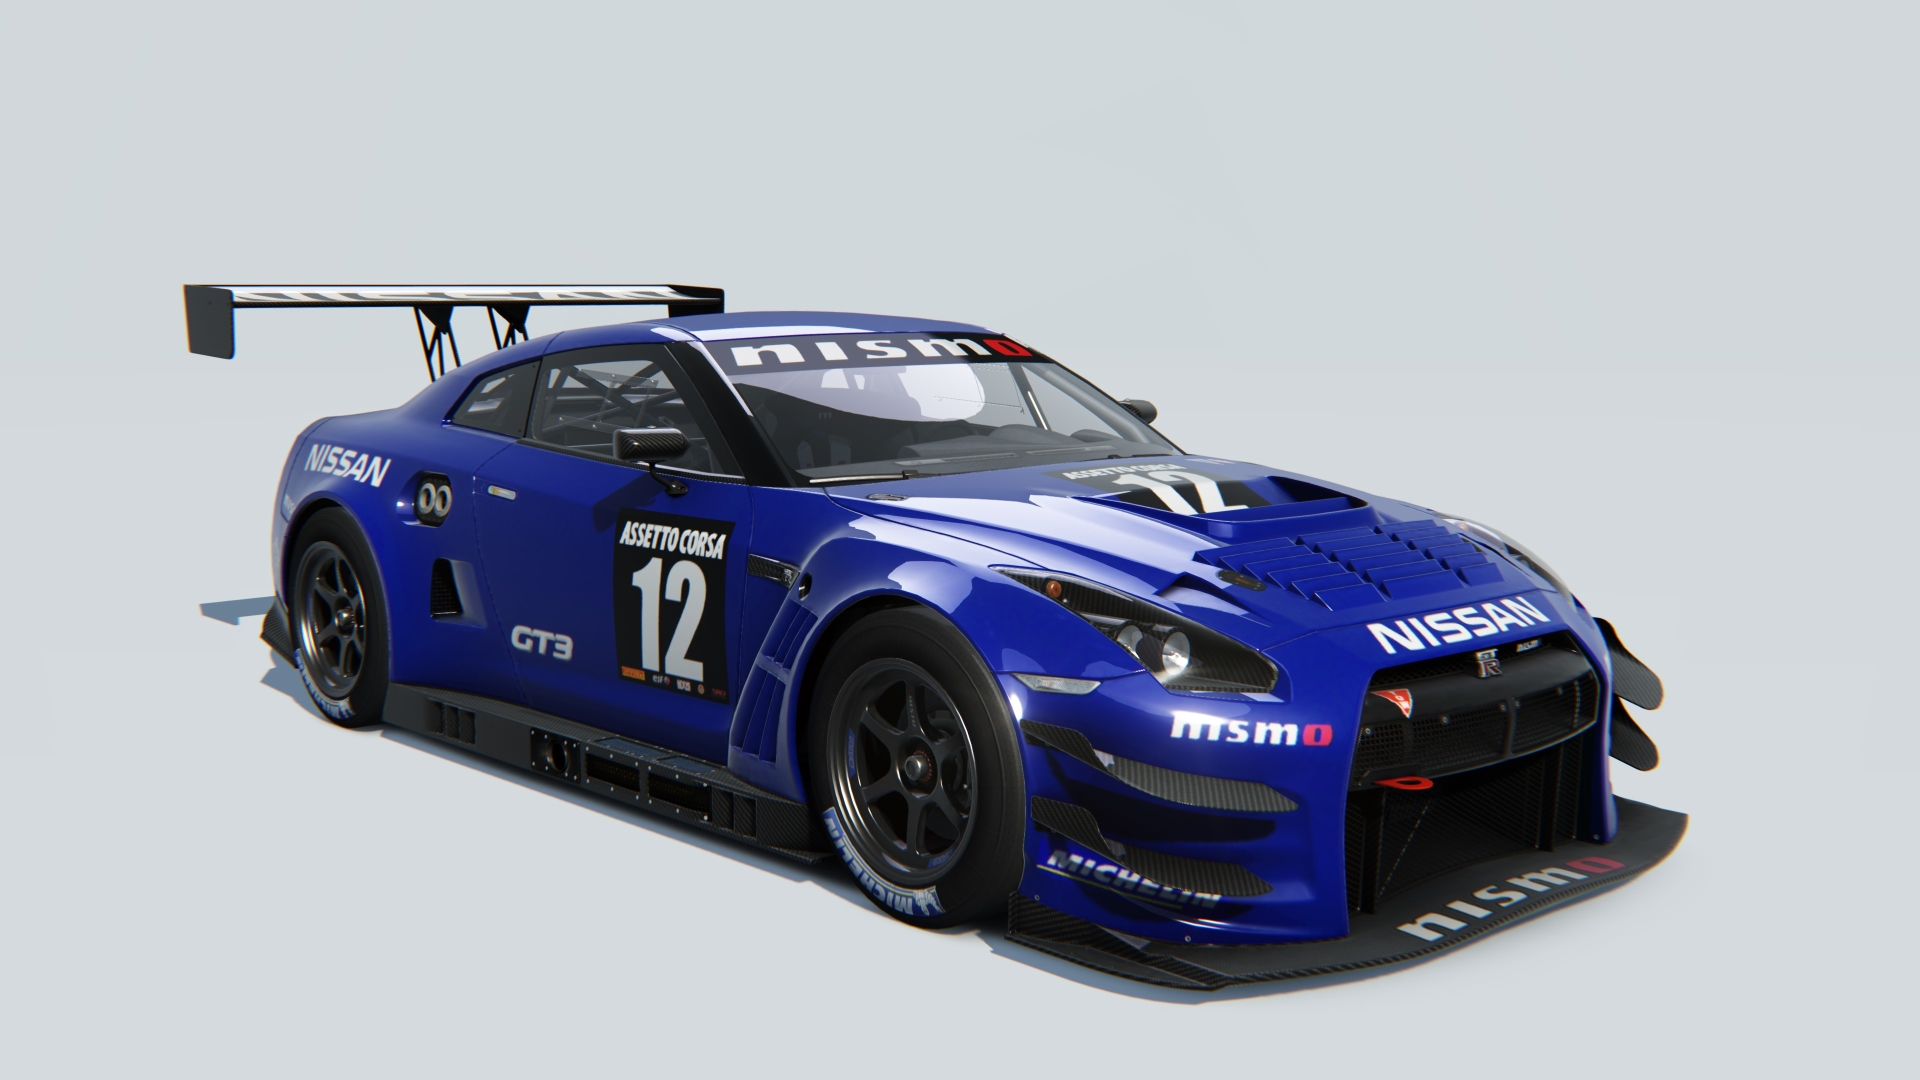 Nissan Gtr Skyline R34 All About New Car Gt R Spec V Assetto Corsa